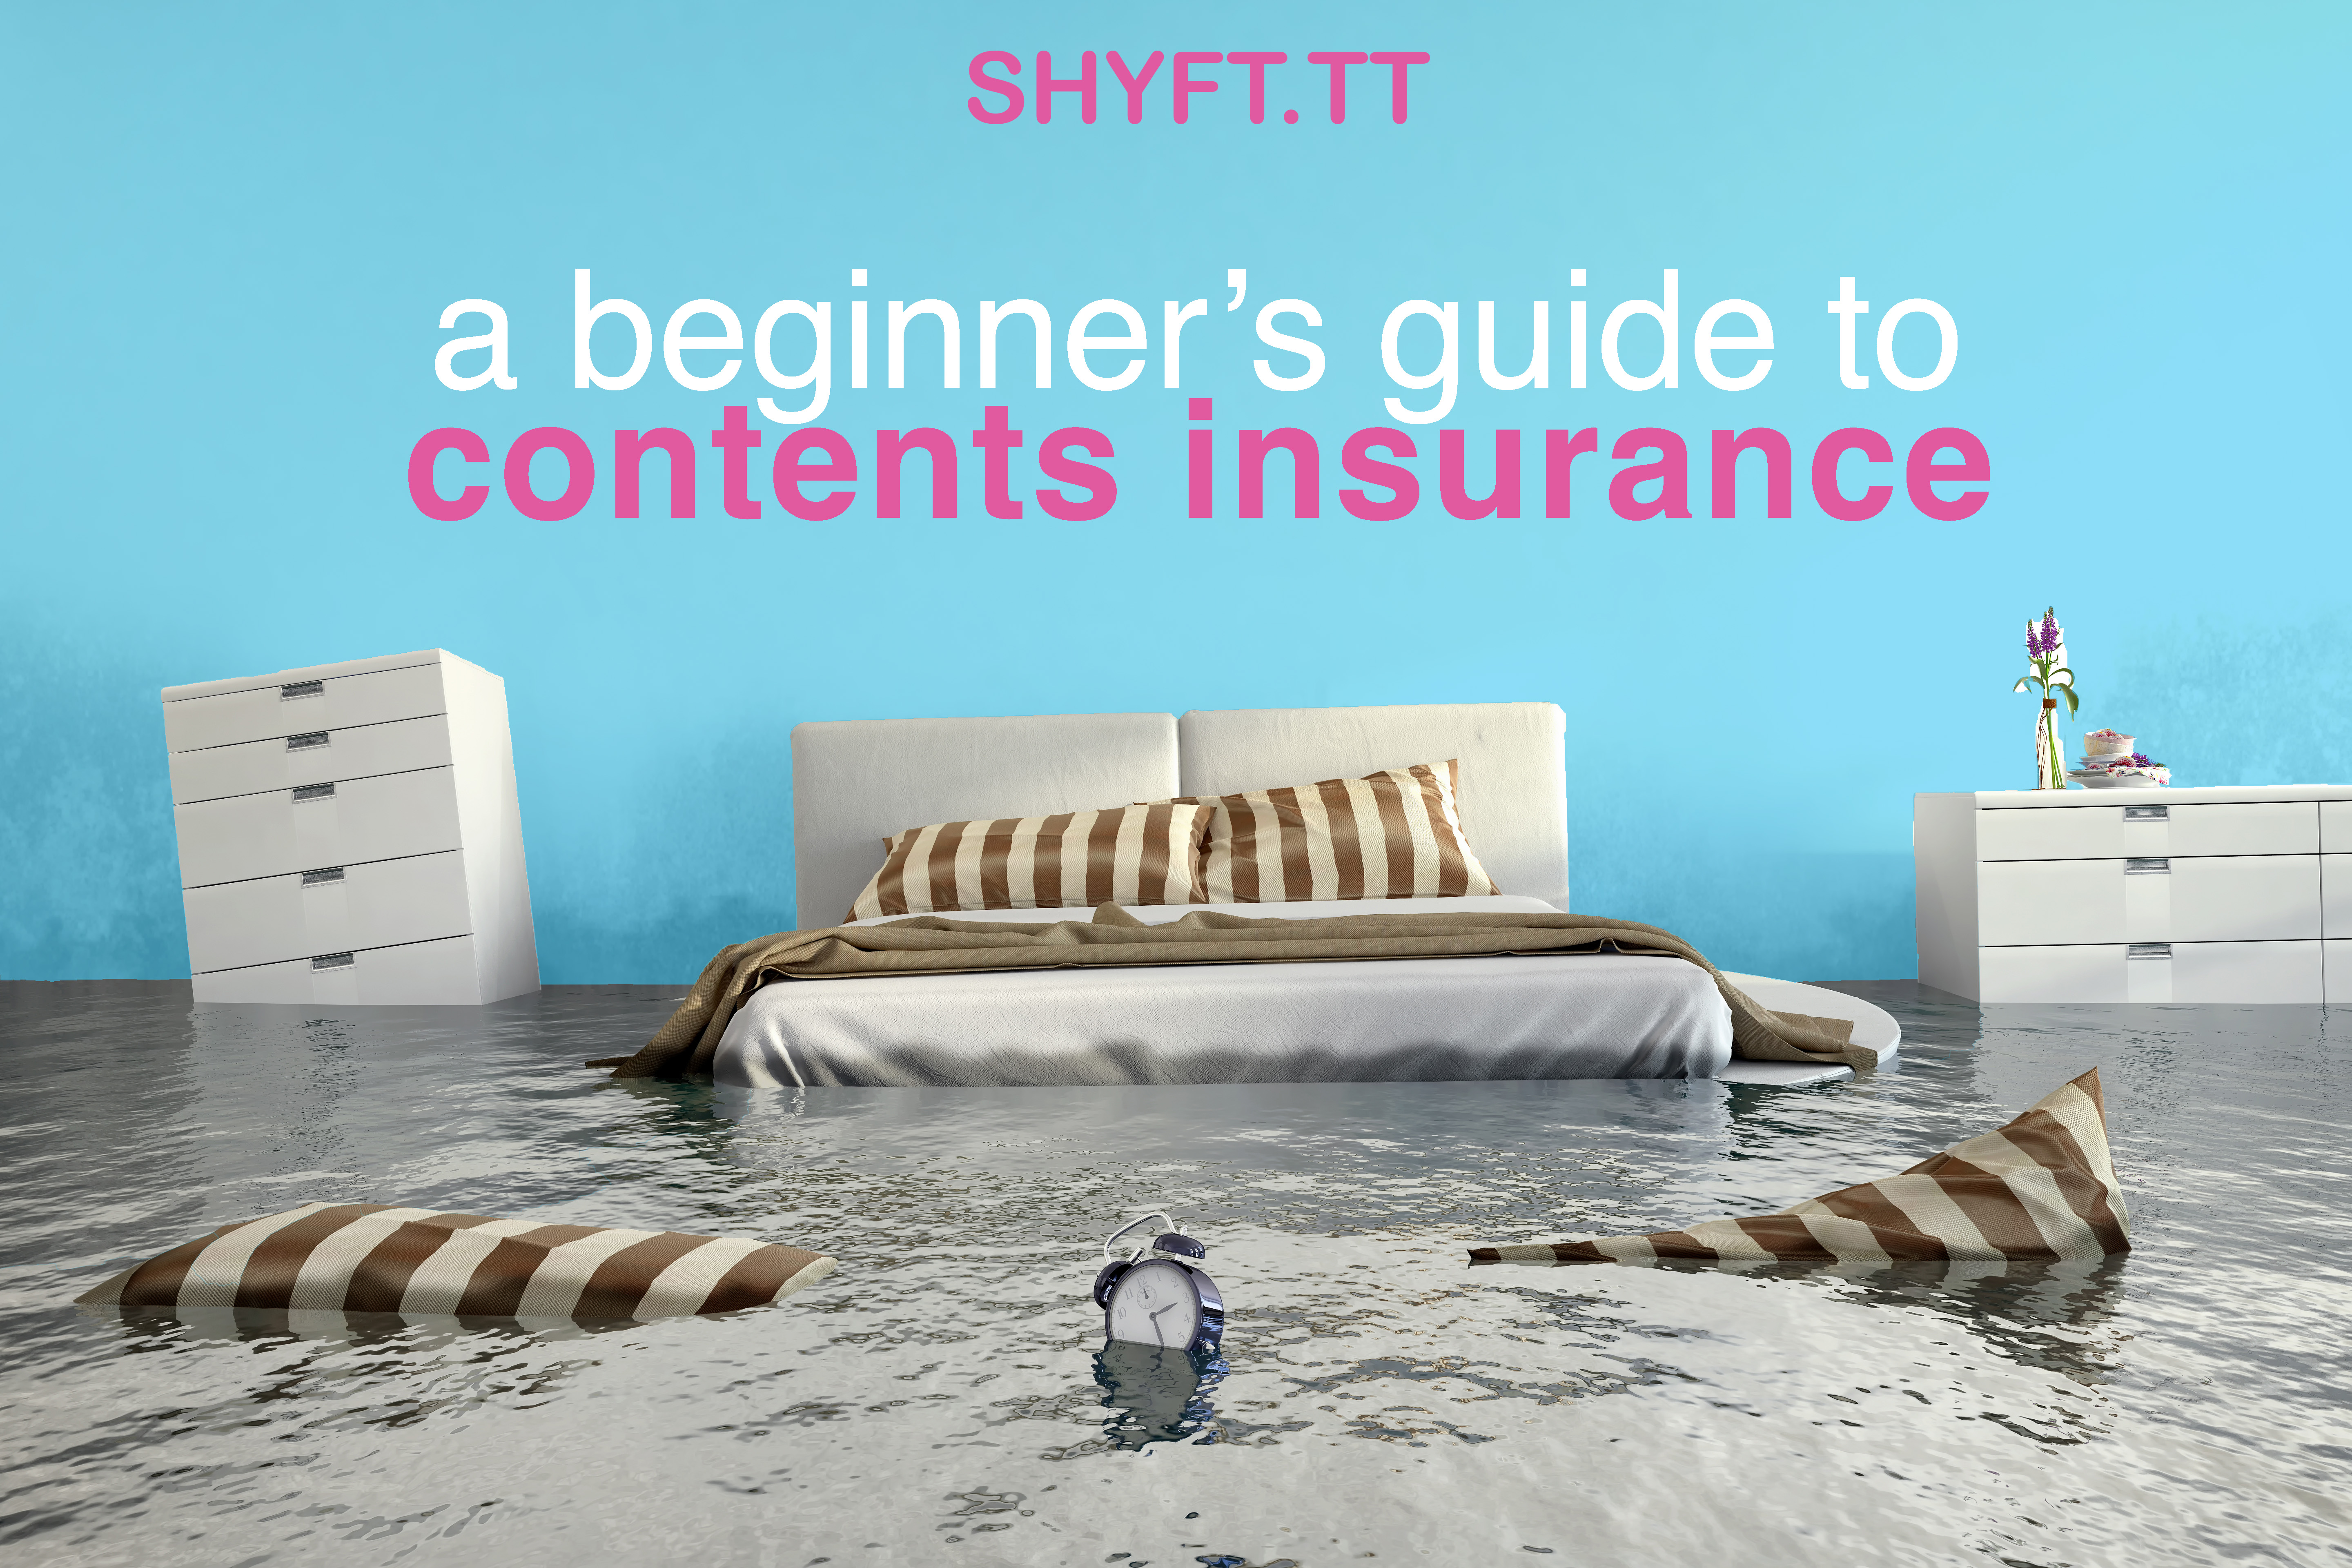 A beginner's guide to contents insurance in T&T - Shyft.tt